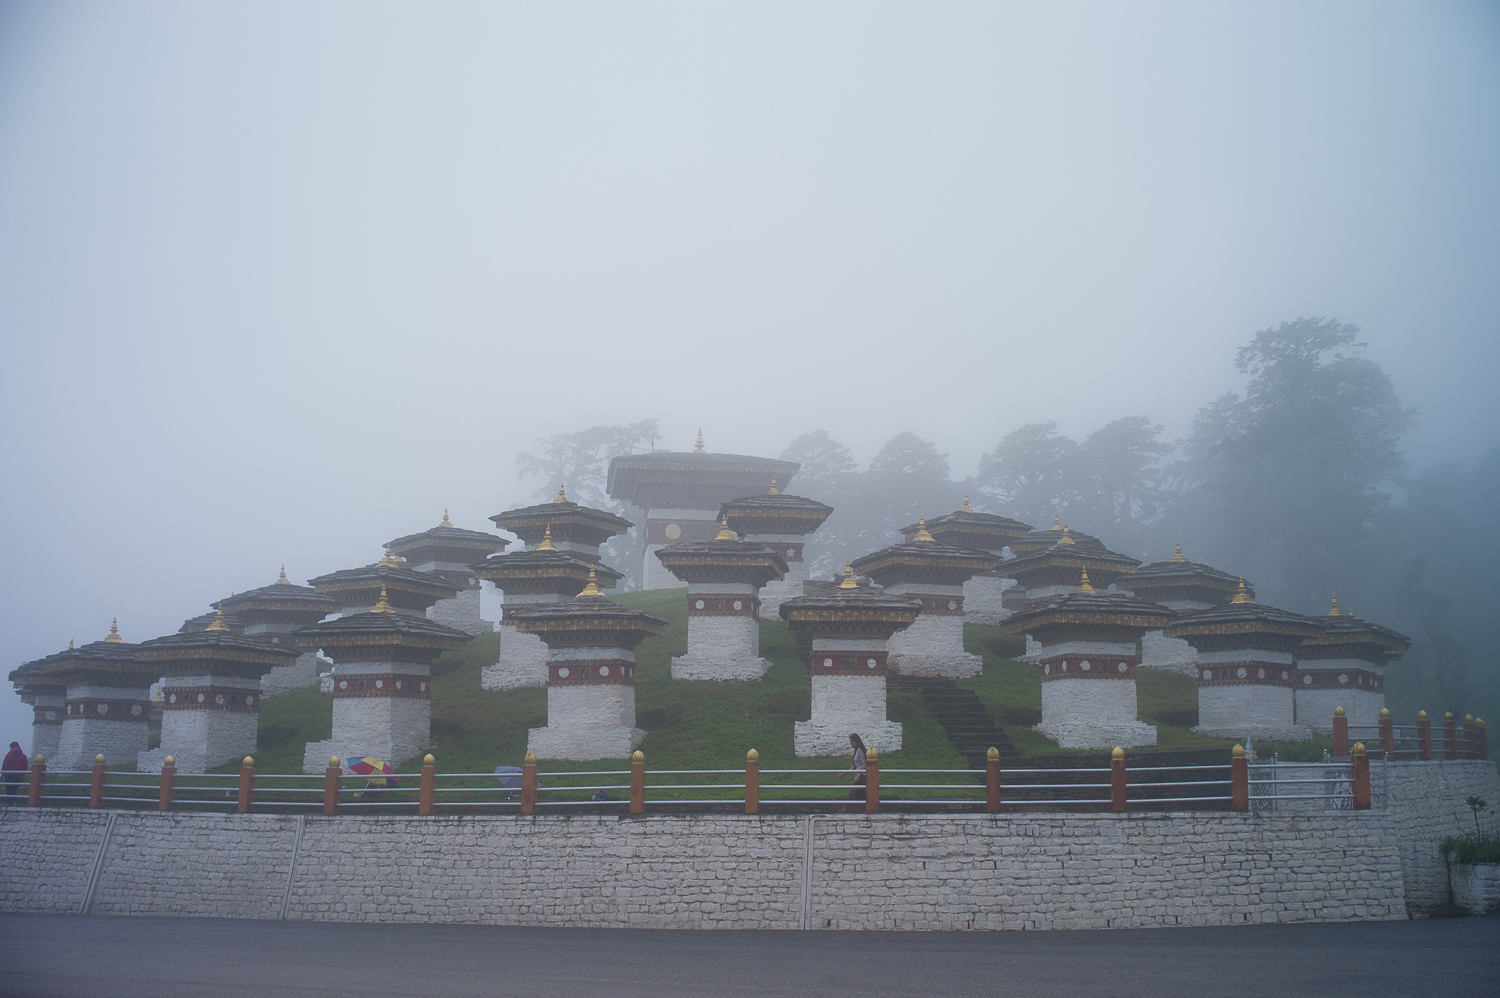 It gets really foggy around the midway to Punakha, note that people are walking around these pagodas numerous times as if they recite mantra numerous times